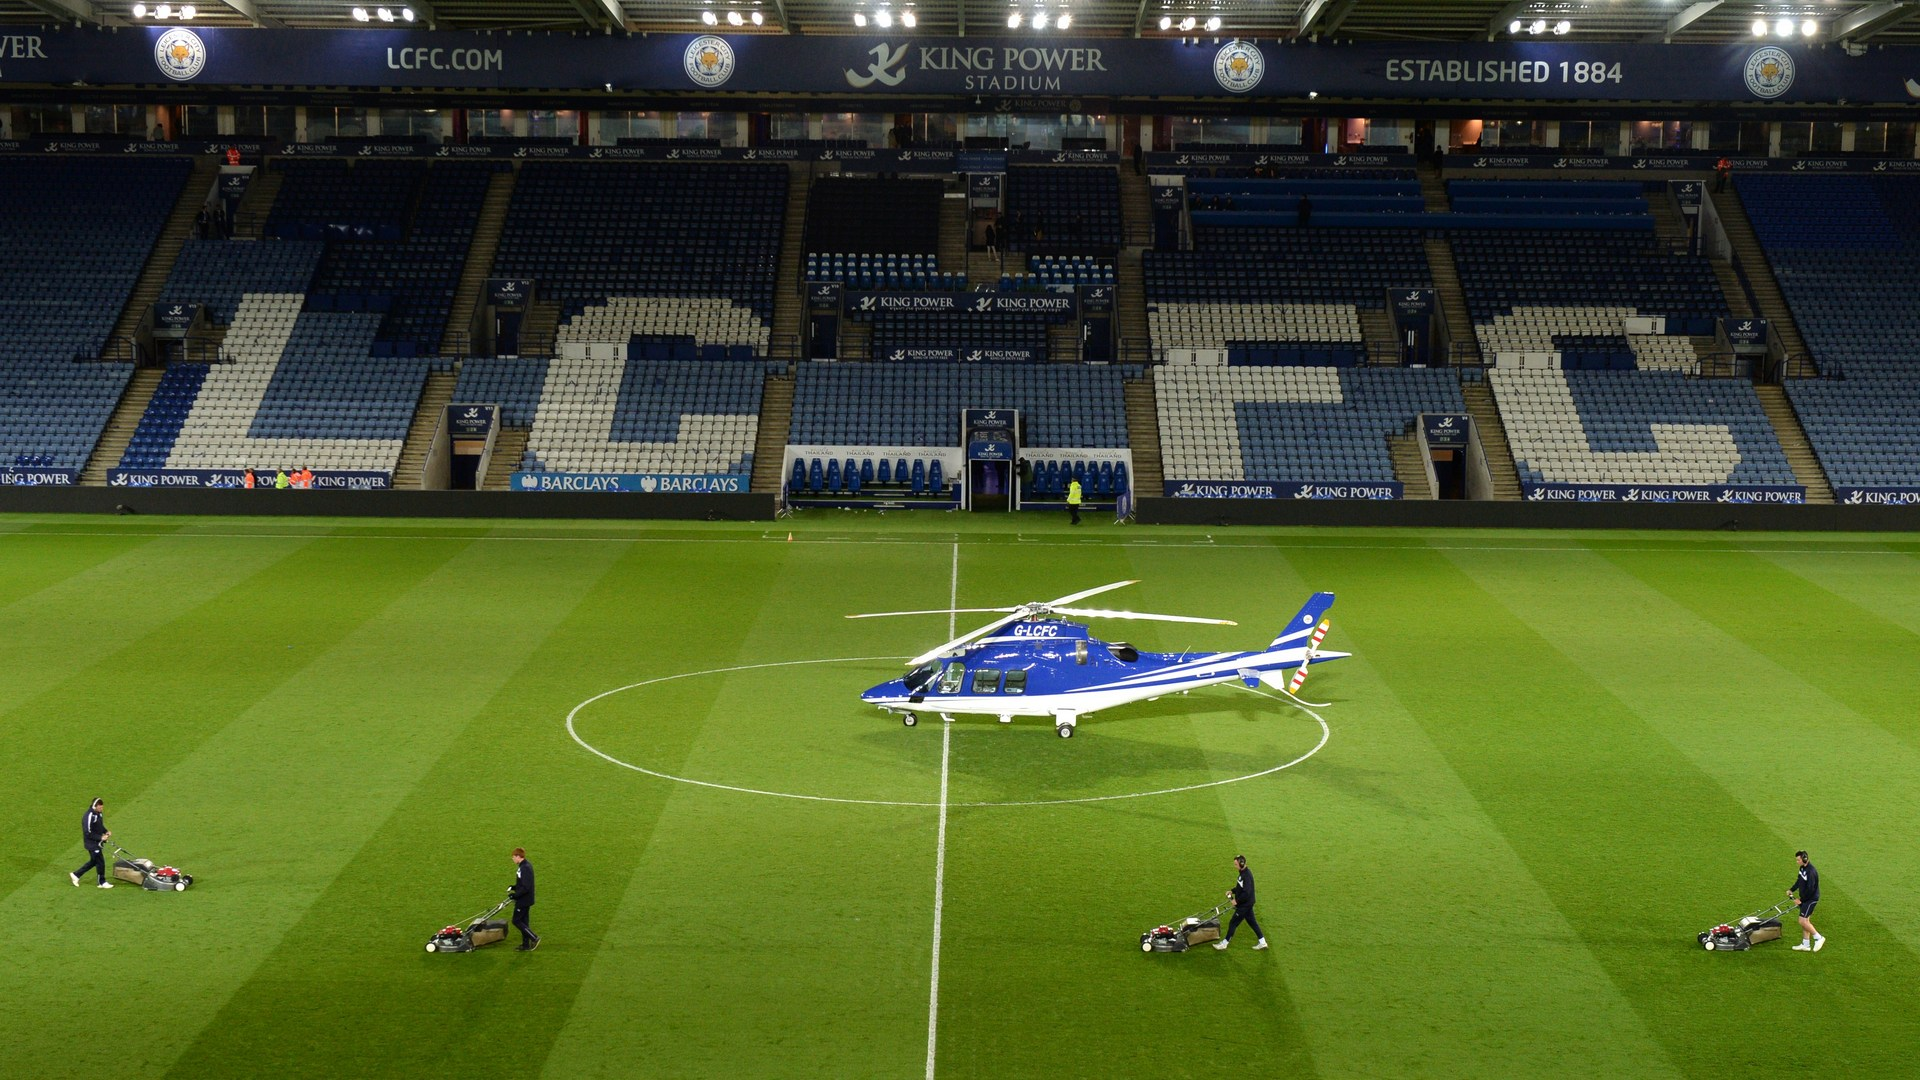 Team Owner's Helicopter Crashes Outside Stadium Following Game